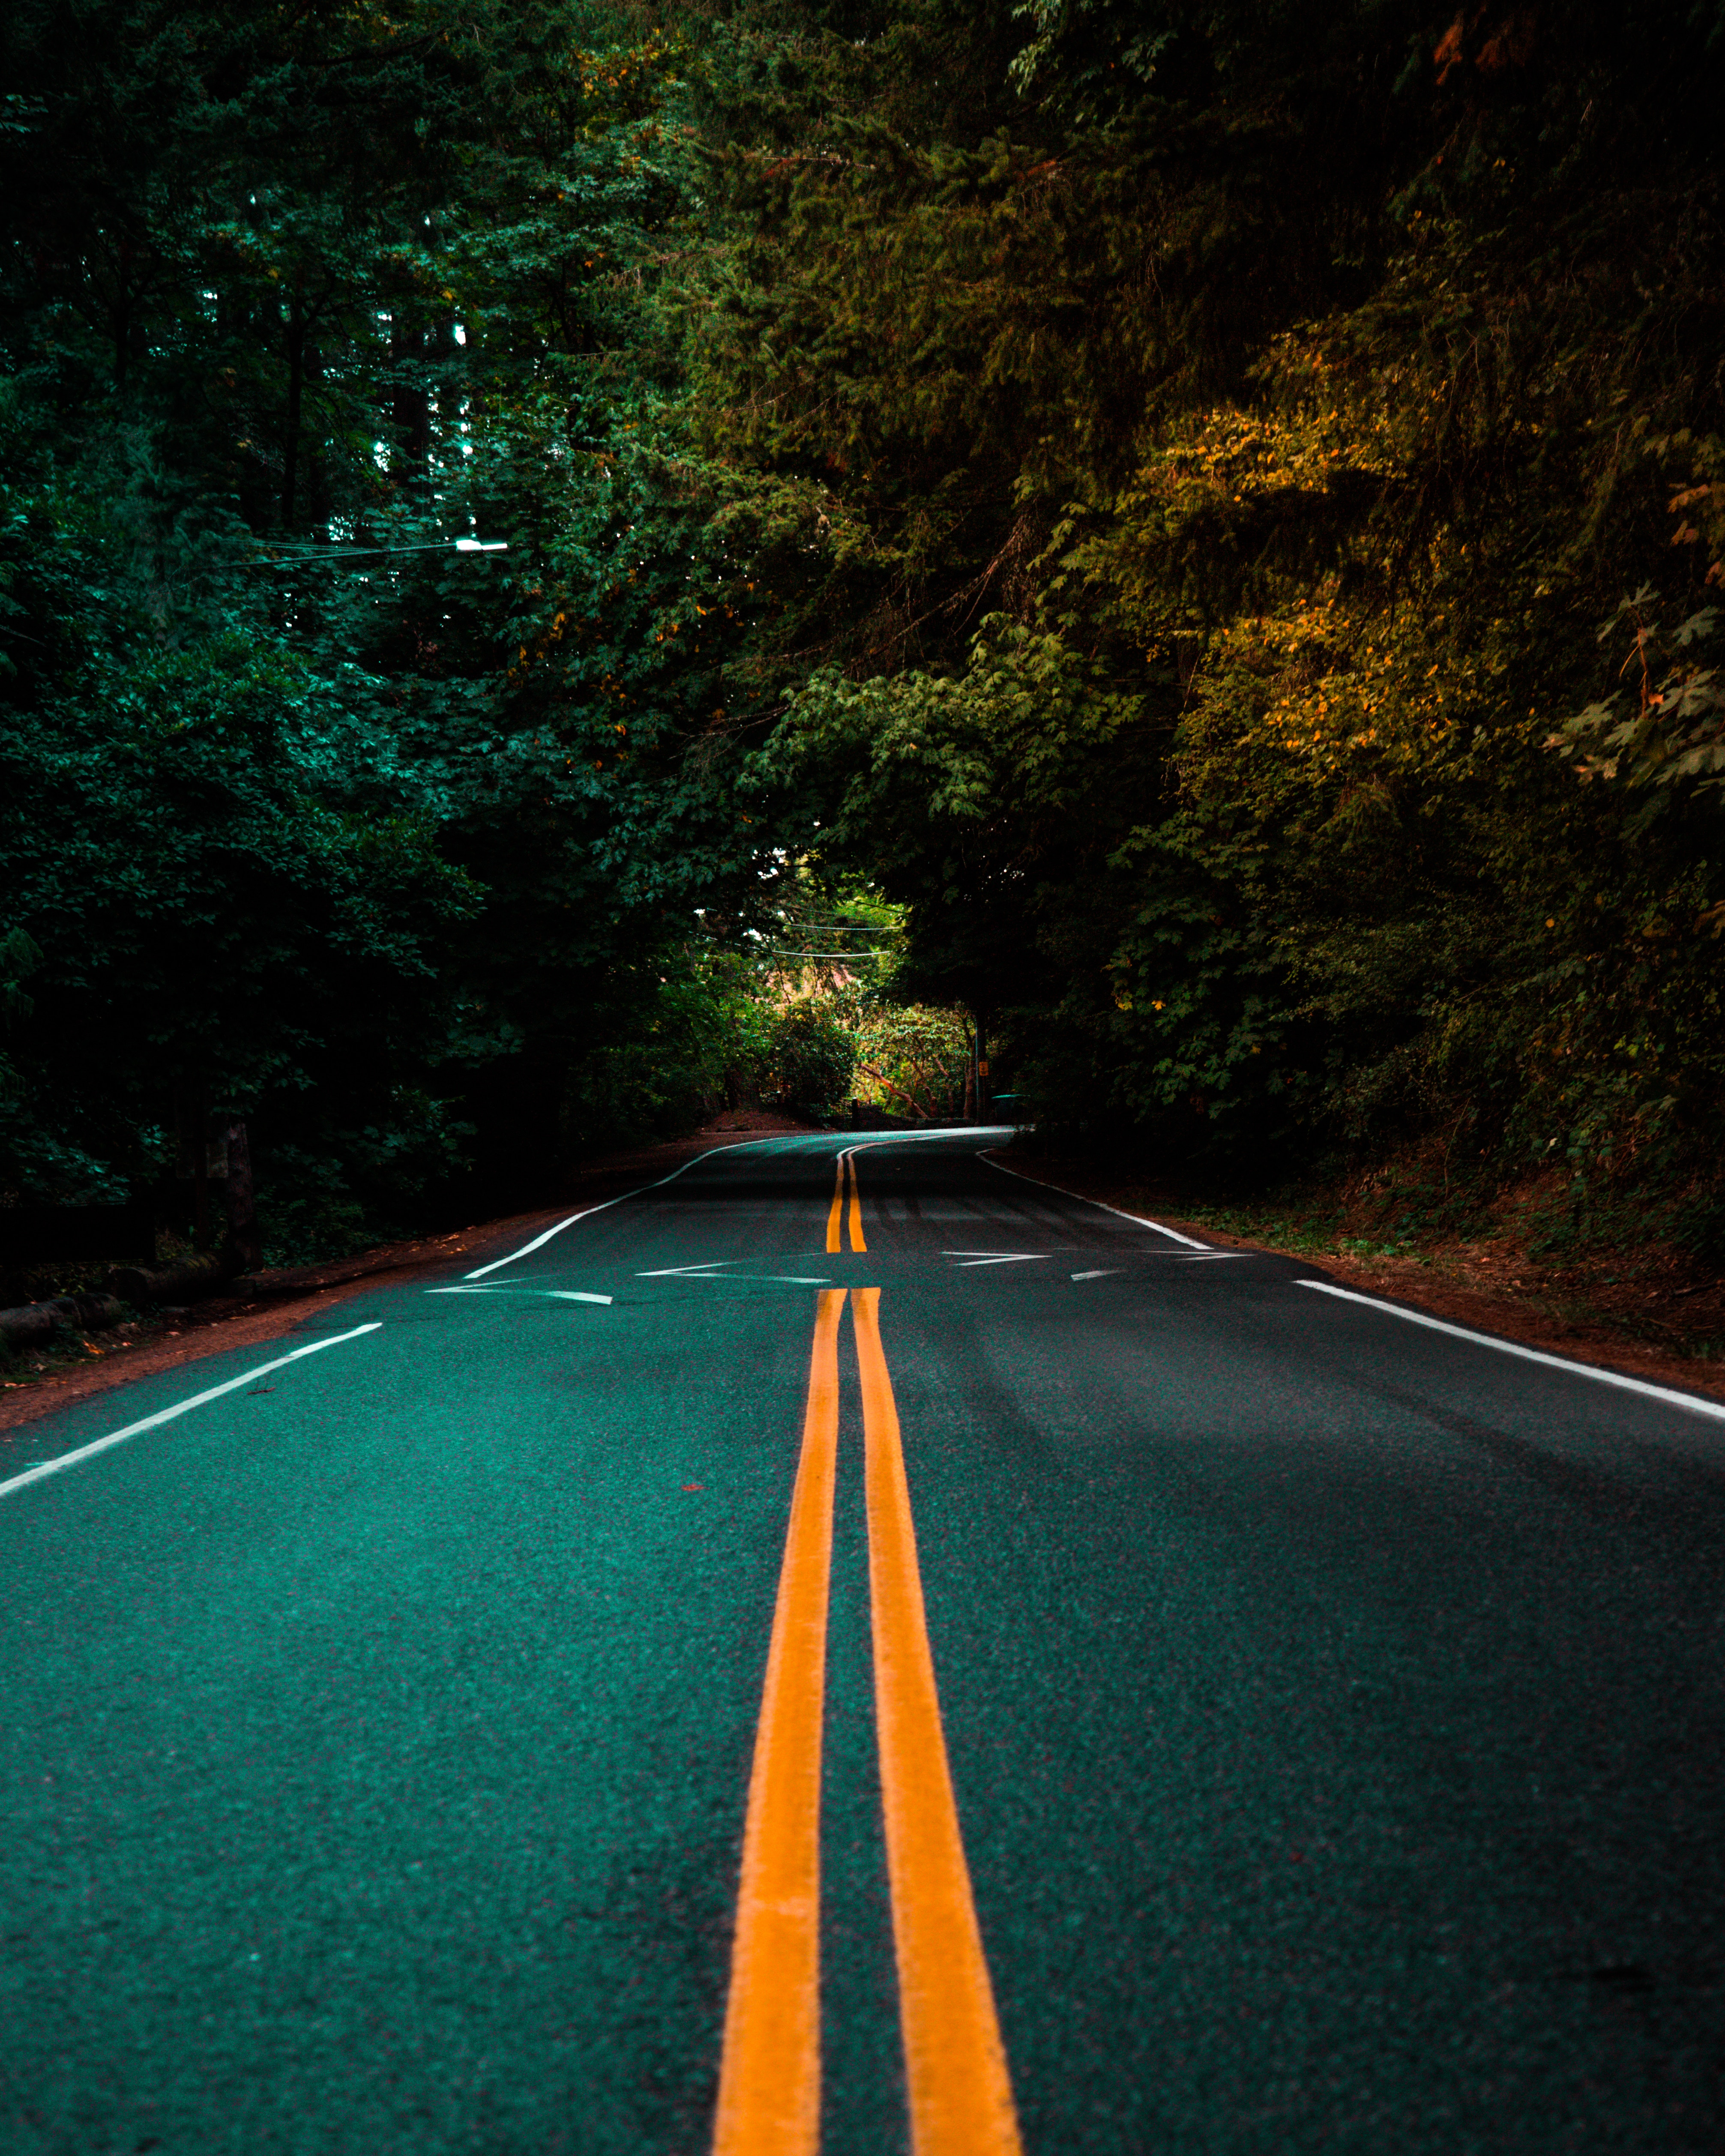 154185 free wallpaper 480x800 for phone, download images Nature, Trees, Road, Turn, Markup, Asphalt 480x800 for mobile